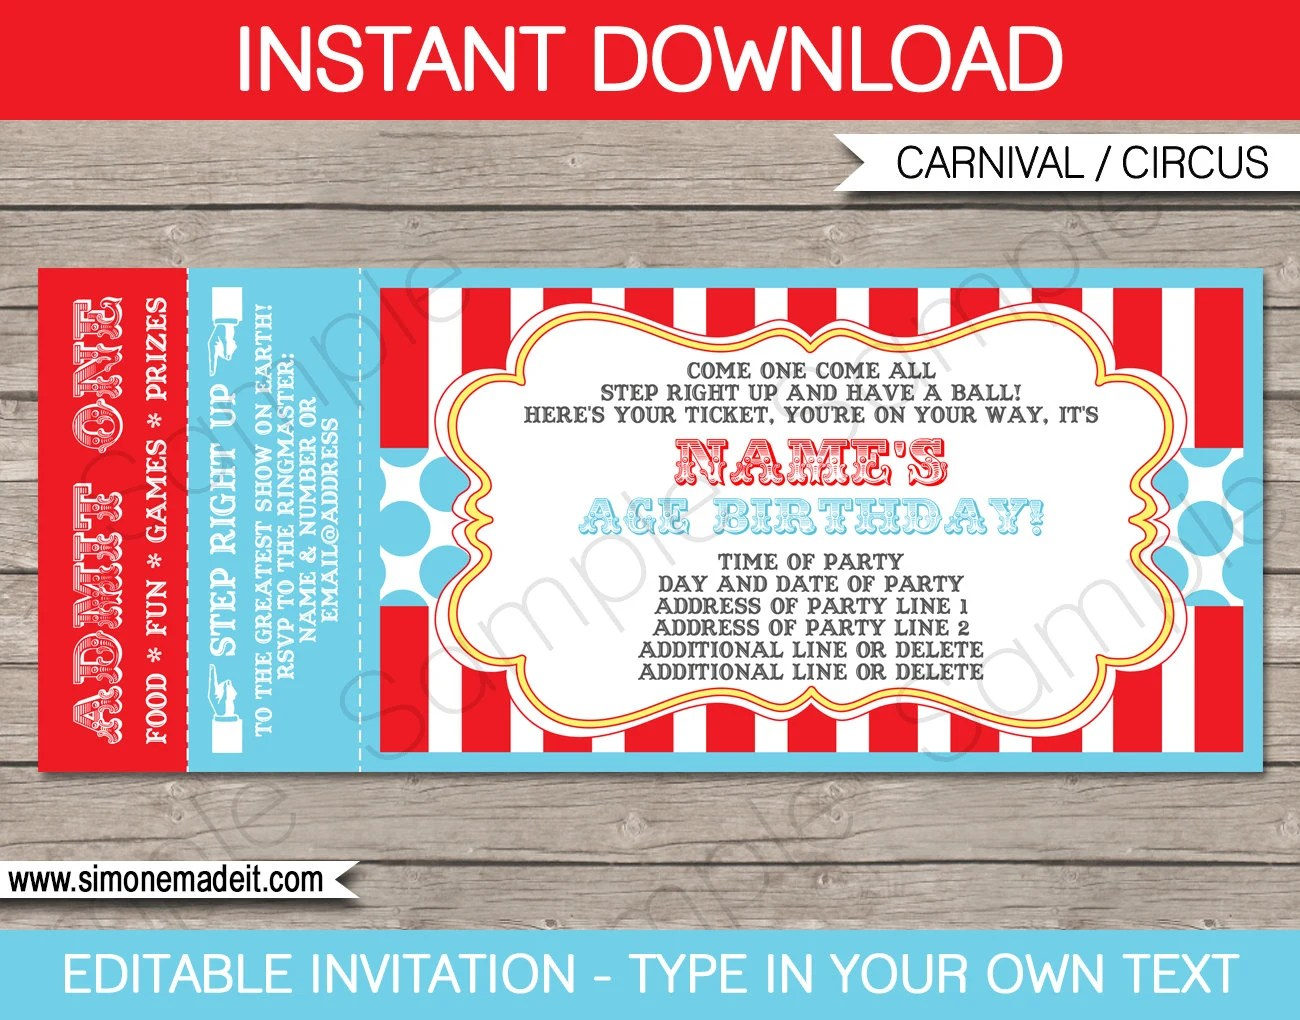 Circus Ticket Invitation Template - Carnival Party - Circus Party - Ball Ticket Template